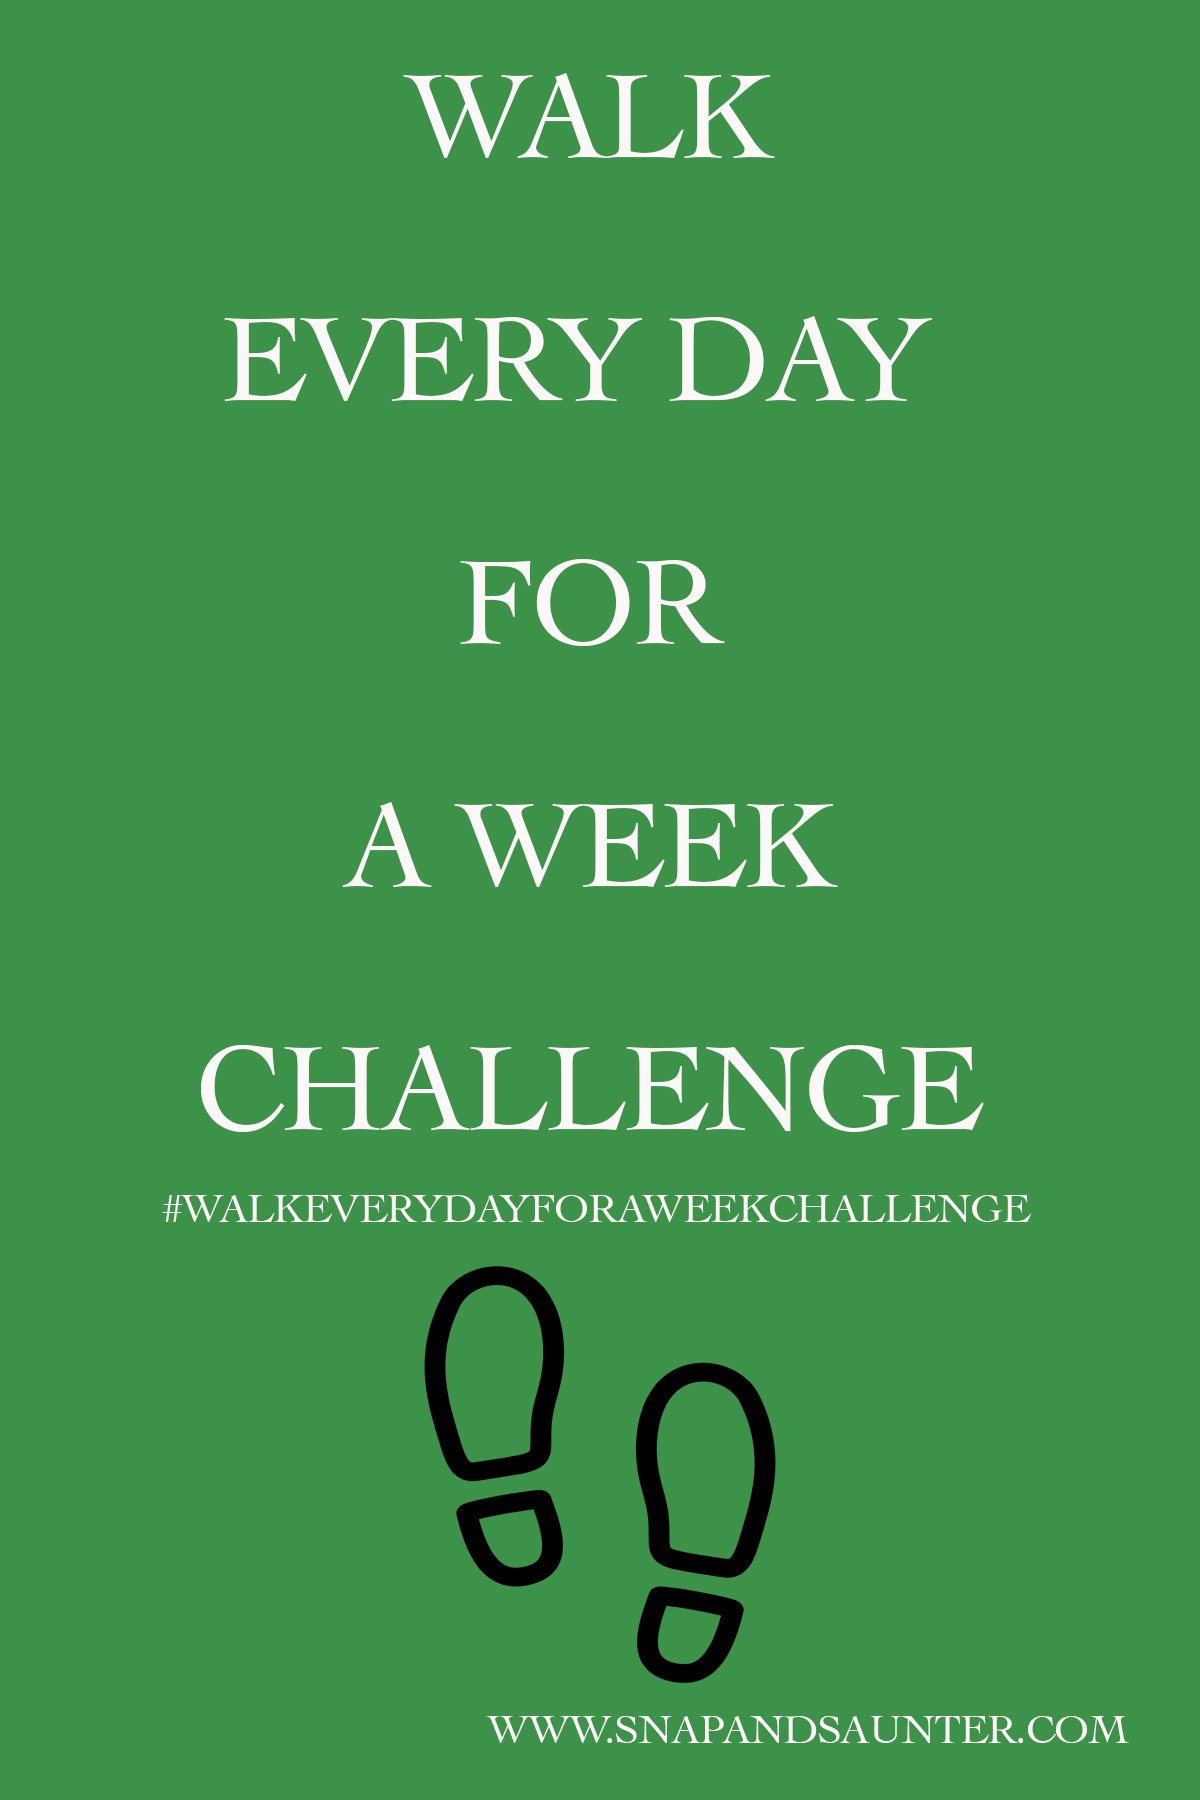 walk every day for a week challenge